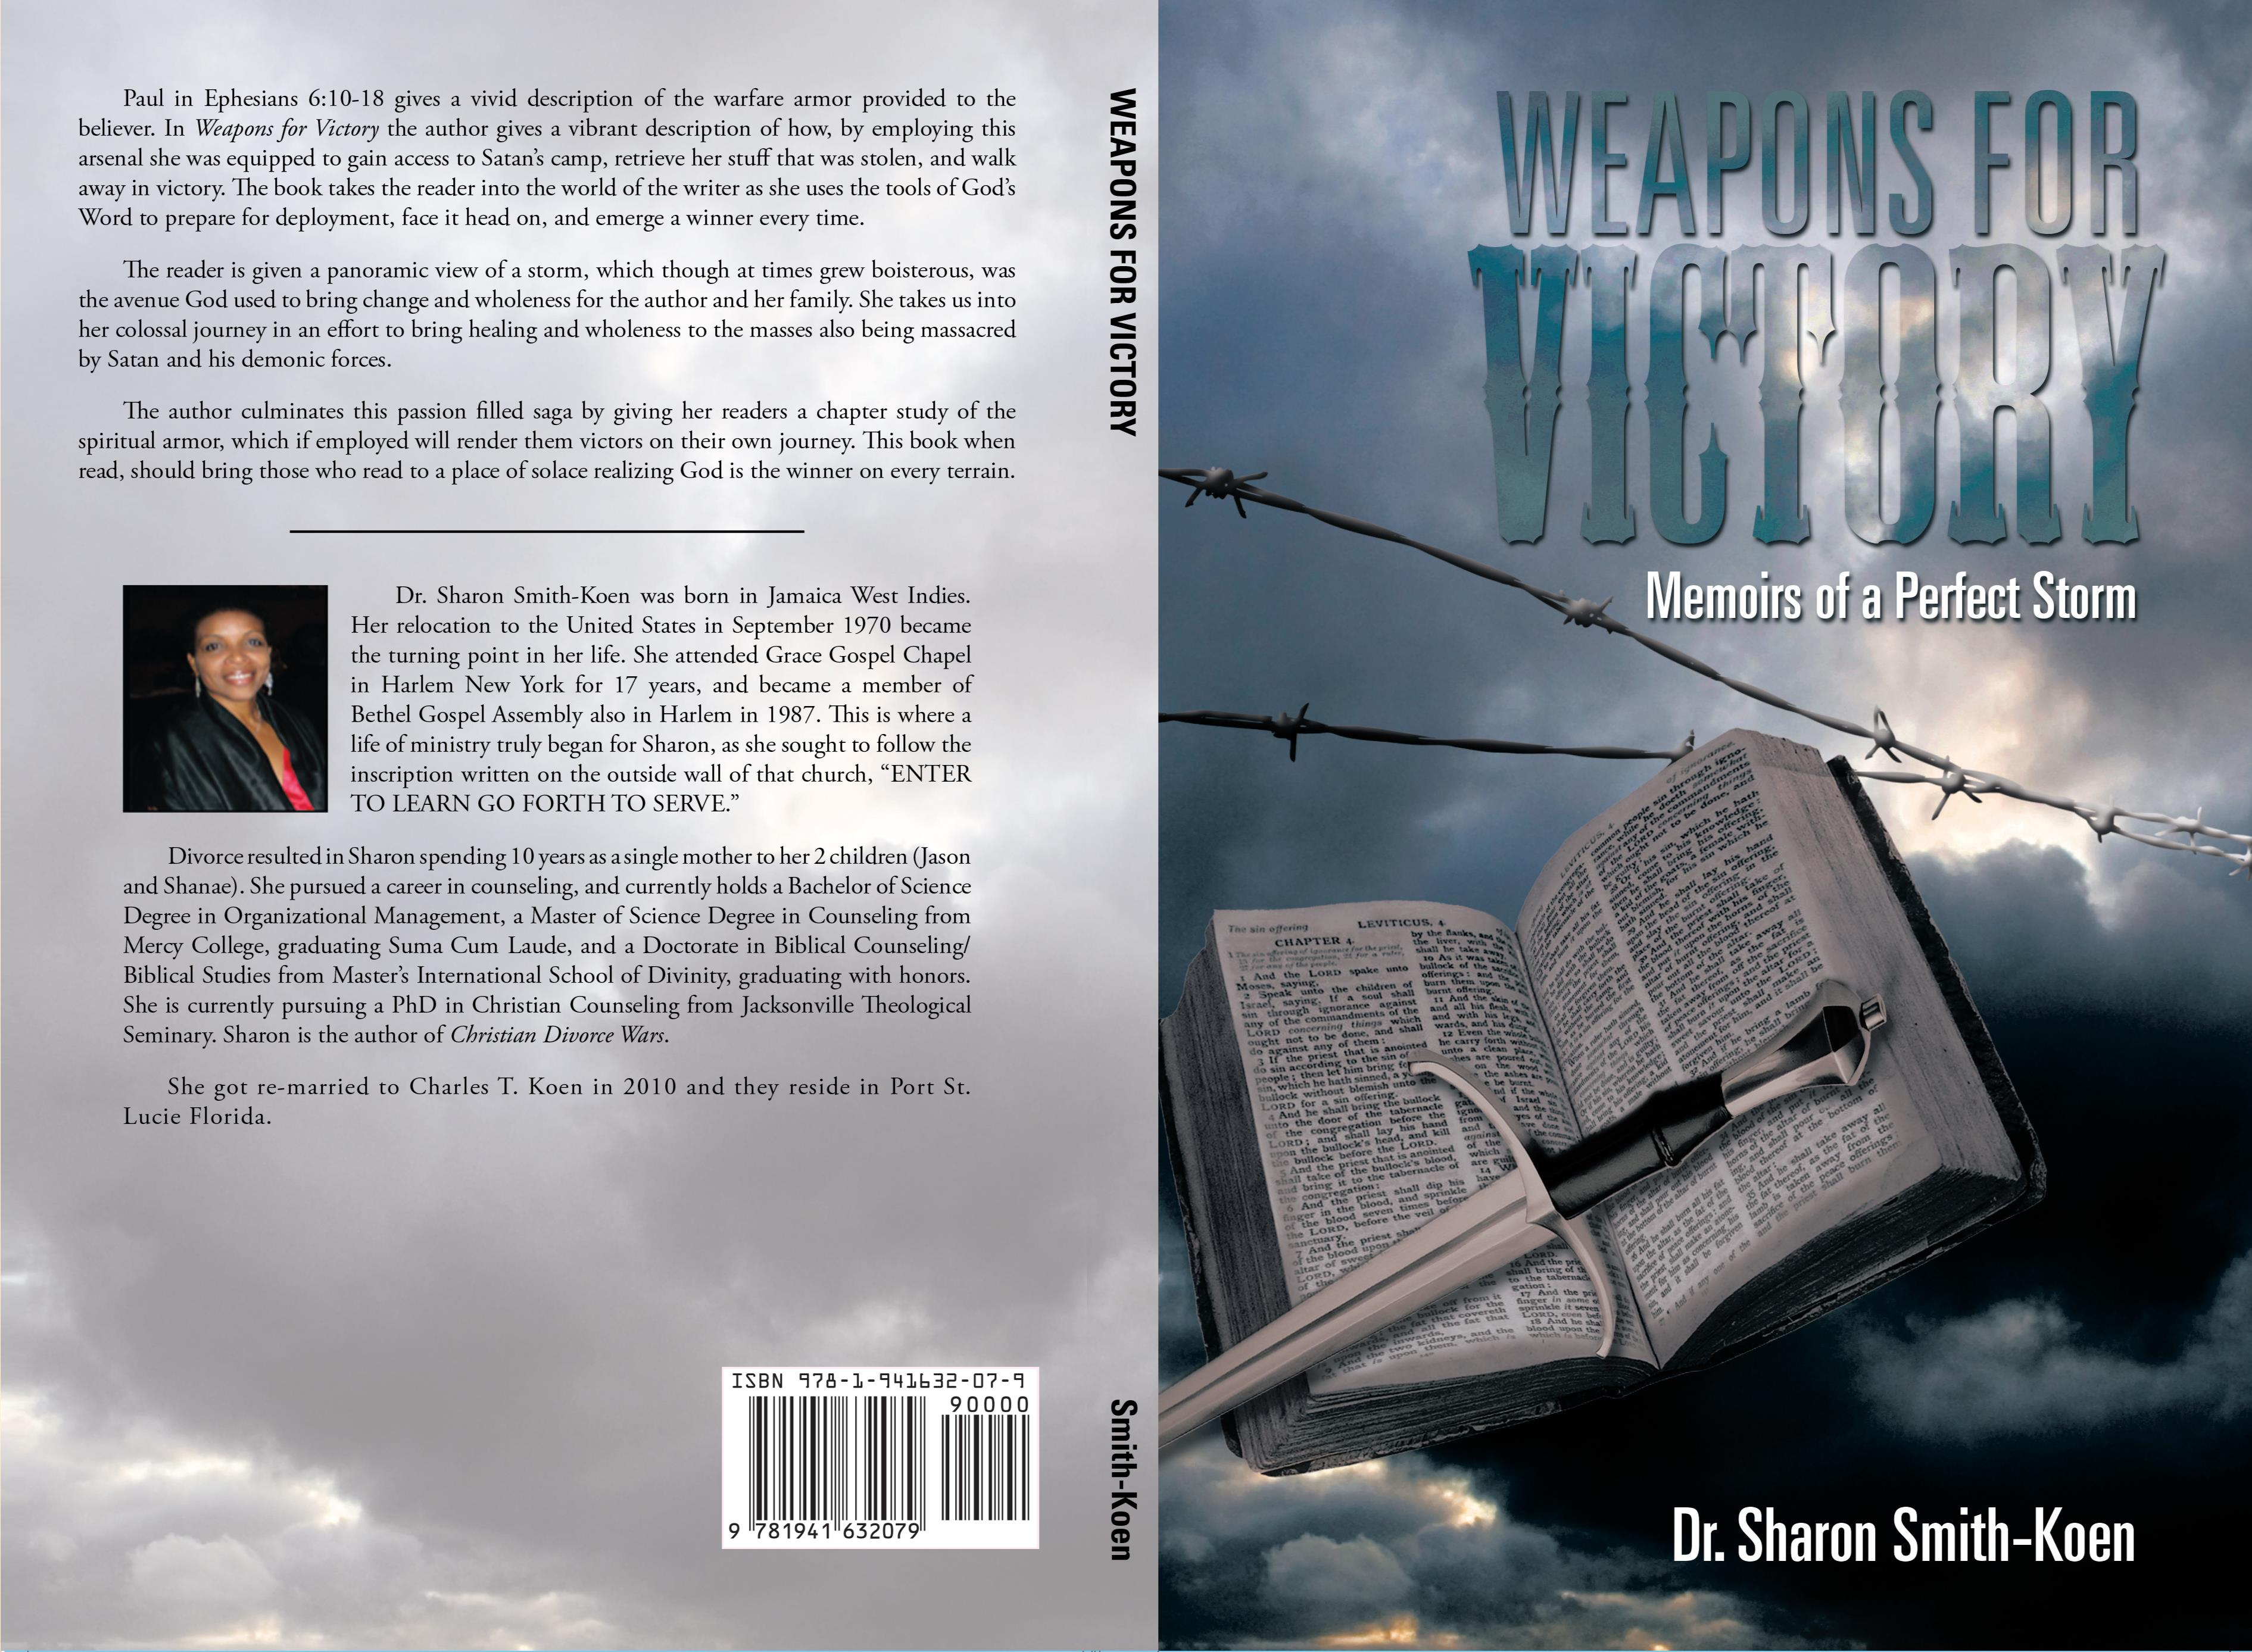 Weapons For Victory cover image